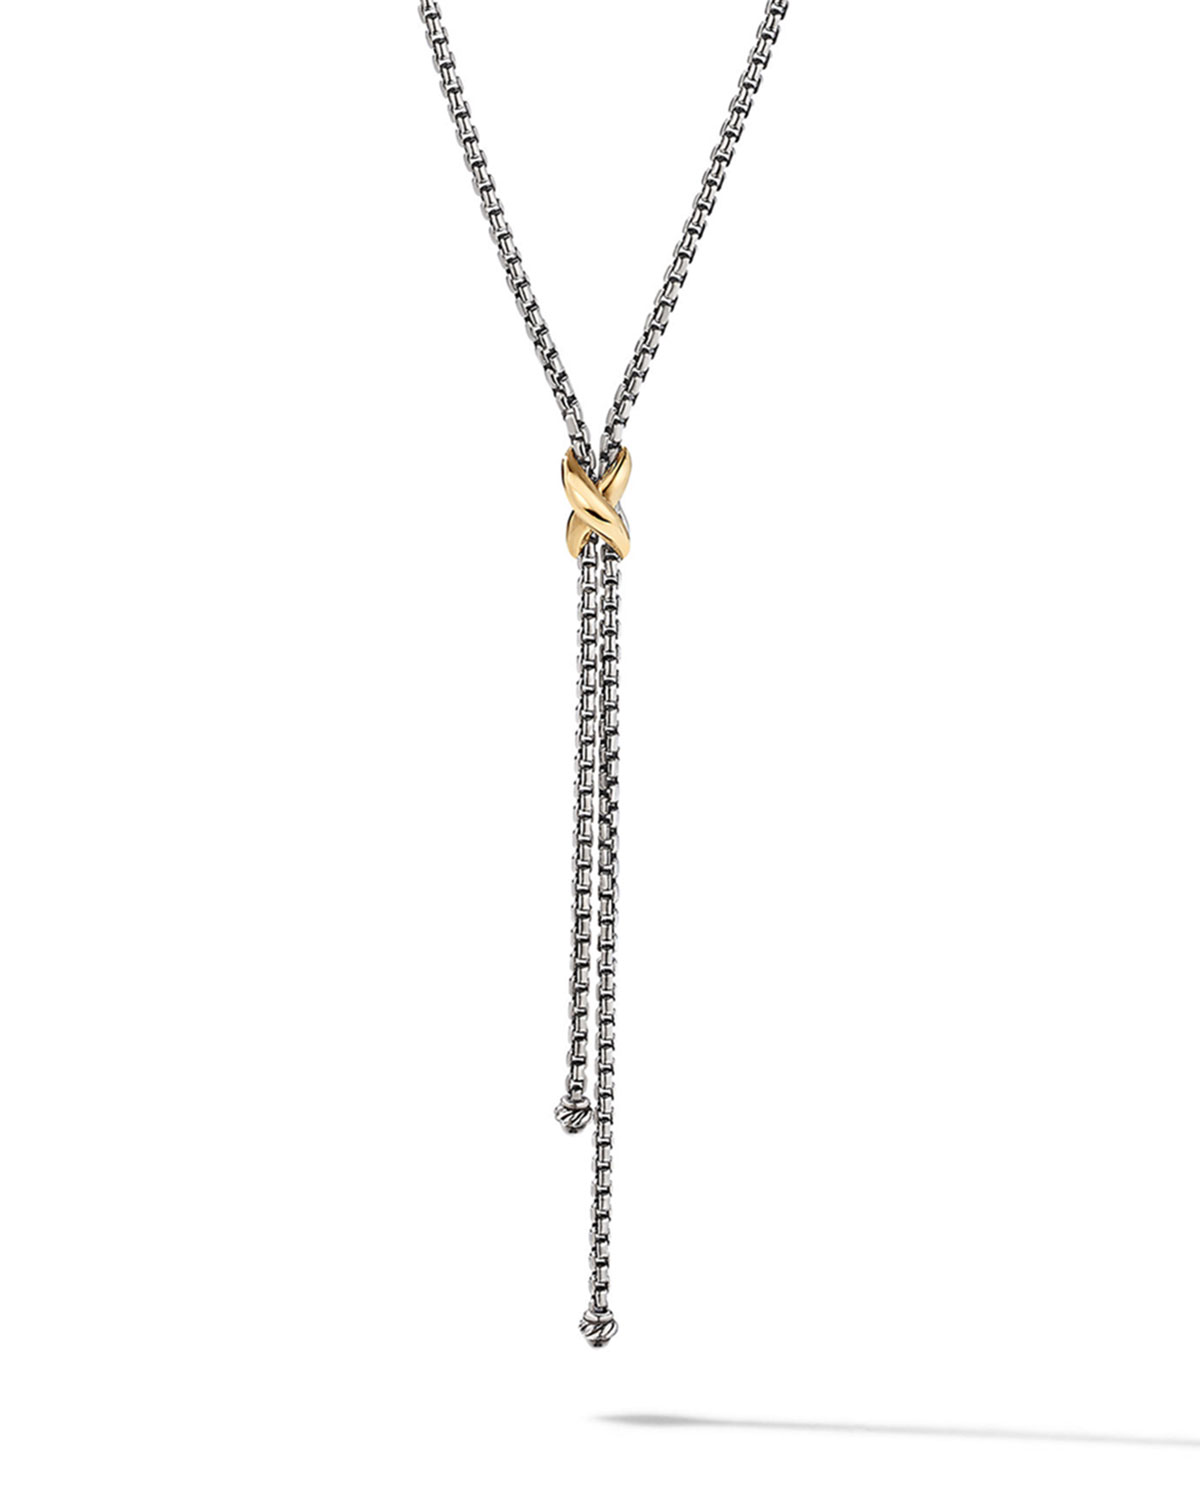 David Yurman Necklaces PETITE X LARIAT Y NECKLACE WITH 18K YELLOW GOLD